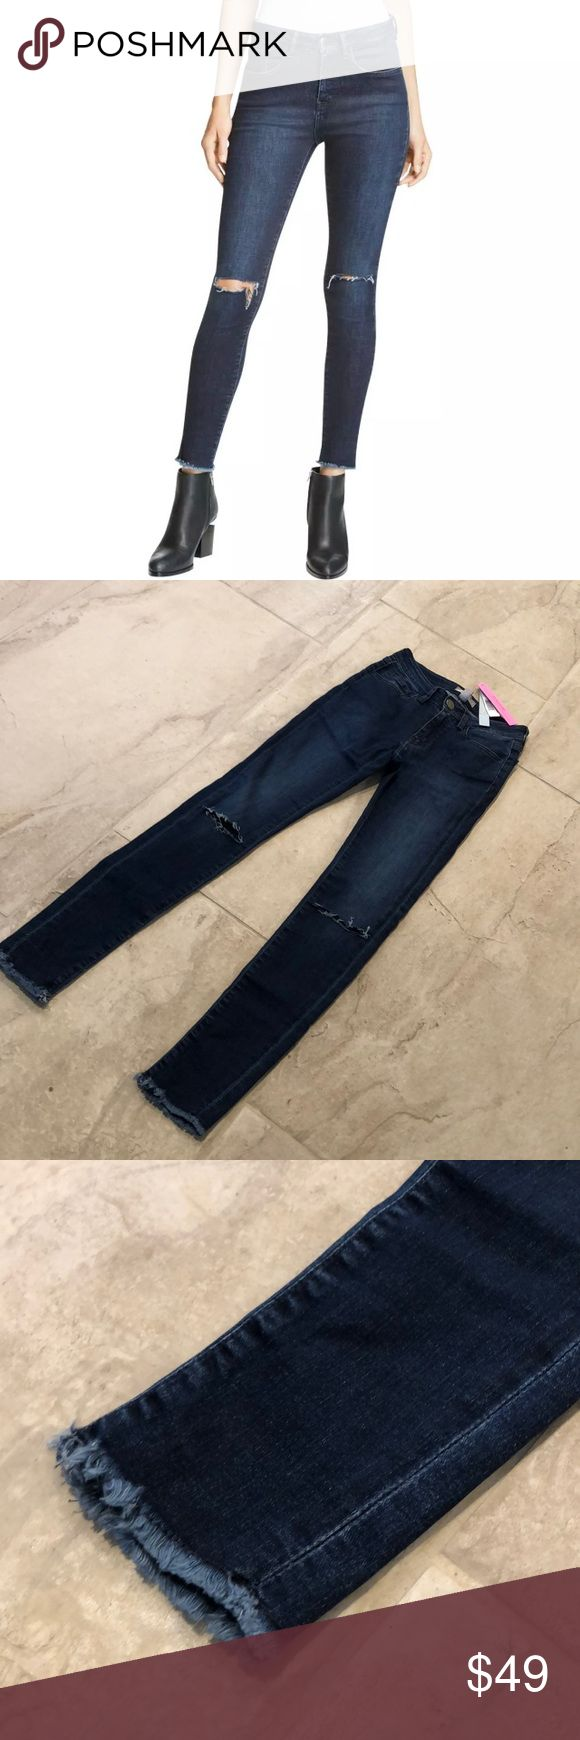 Destroyed denim from Bloomingdales Destroyed five pocket denim. Waist Across: 13 Inches, Inseam: 28 Inches, Leg Opening: 8 Inches, Hips Across: 14 Inches, Rise: 9 Inches Material: 98% Cotton/2% Elastane Aqua Jeans Skinny